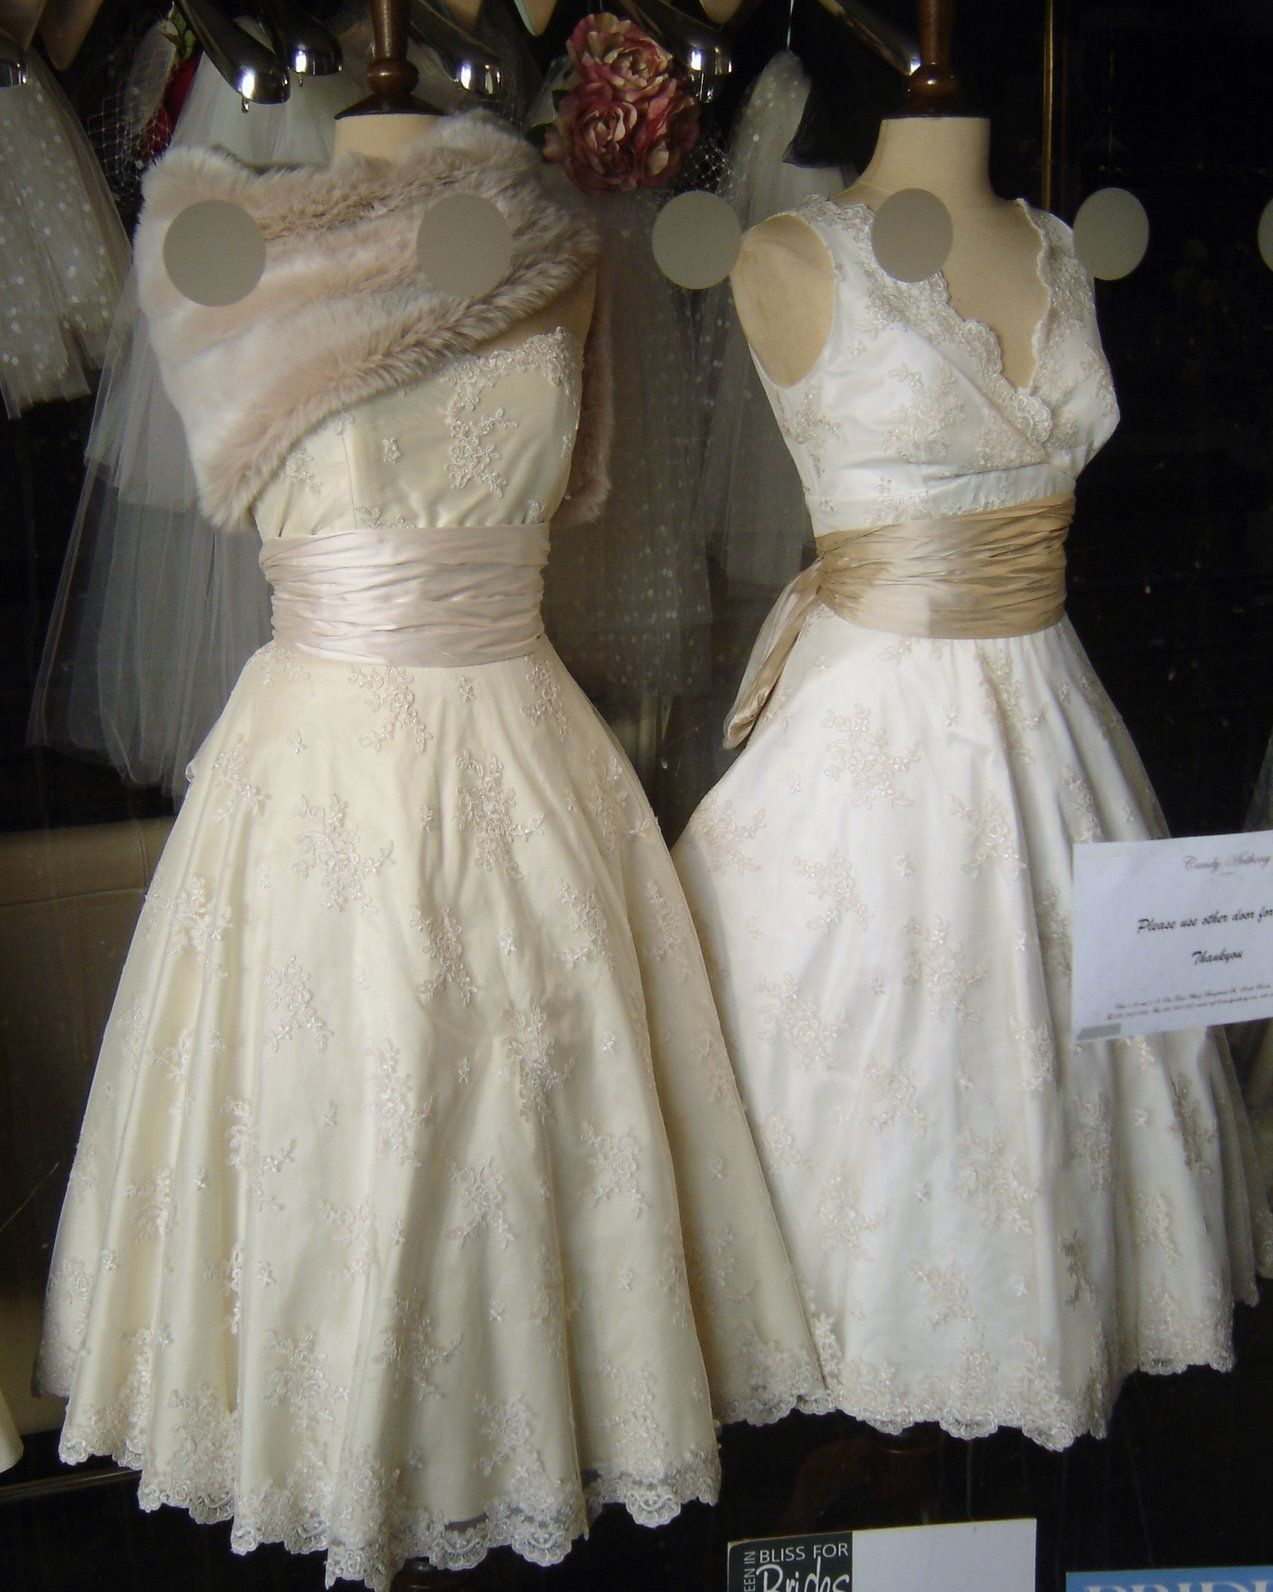 Cream dresses for weddings  Please Something similar to these white and cream dresses Very